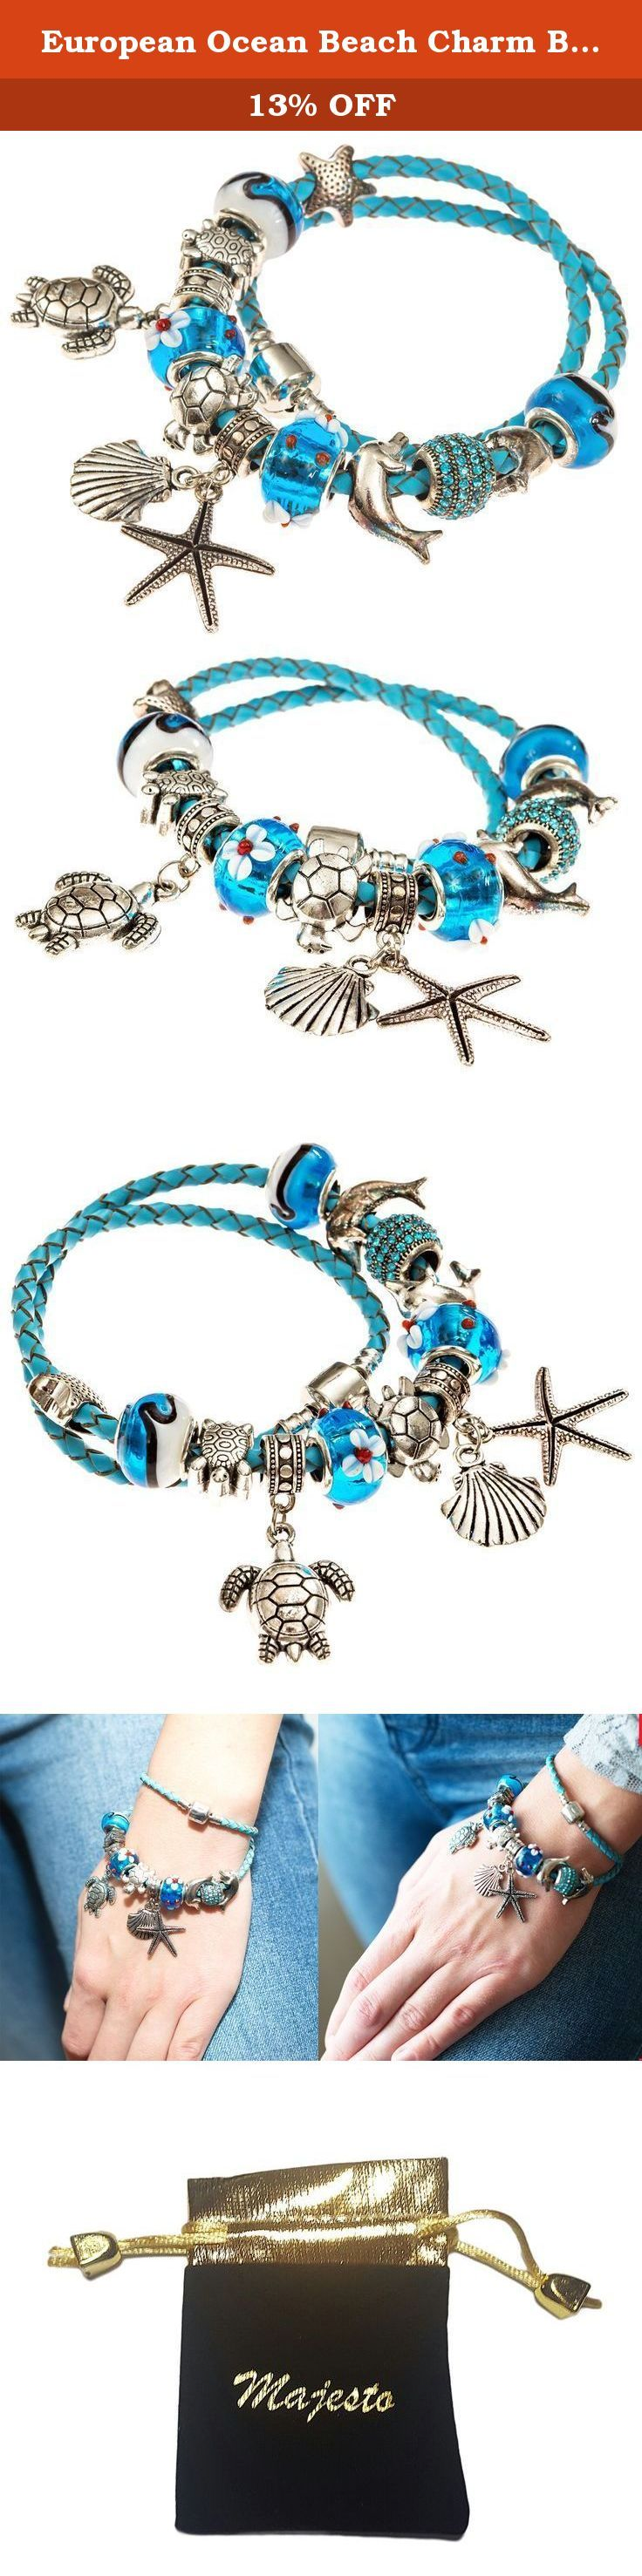 """European Ocean Beach Charm Beaded Leather Wrap 7.5 Inch for Women and Teen Girls Turtle Starfish Seashell Dolphin Dangle Charms Aquamarine Murano Glass Beads Prime Quality Gift. """"Why would I want to buy this product??"""" you might ask There are a few simple answers to that: DESIGNED TO LAST - Quality steel resists corrosion and wear. Will never tarnish! AFFORDABLE - and hassle-free, no need for polishing like 925 sterling silver ALLERGY FREE materials used: 316 Surgical Grade Stainless…"""